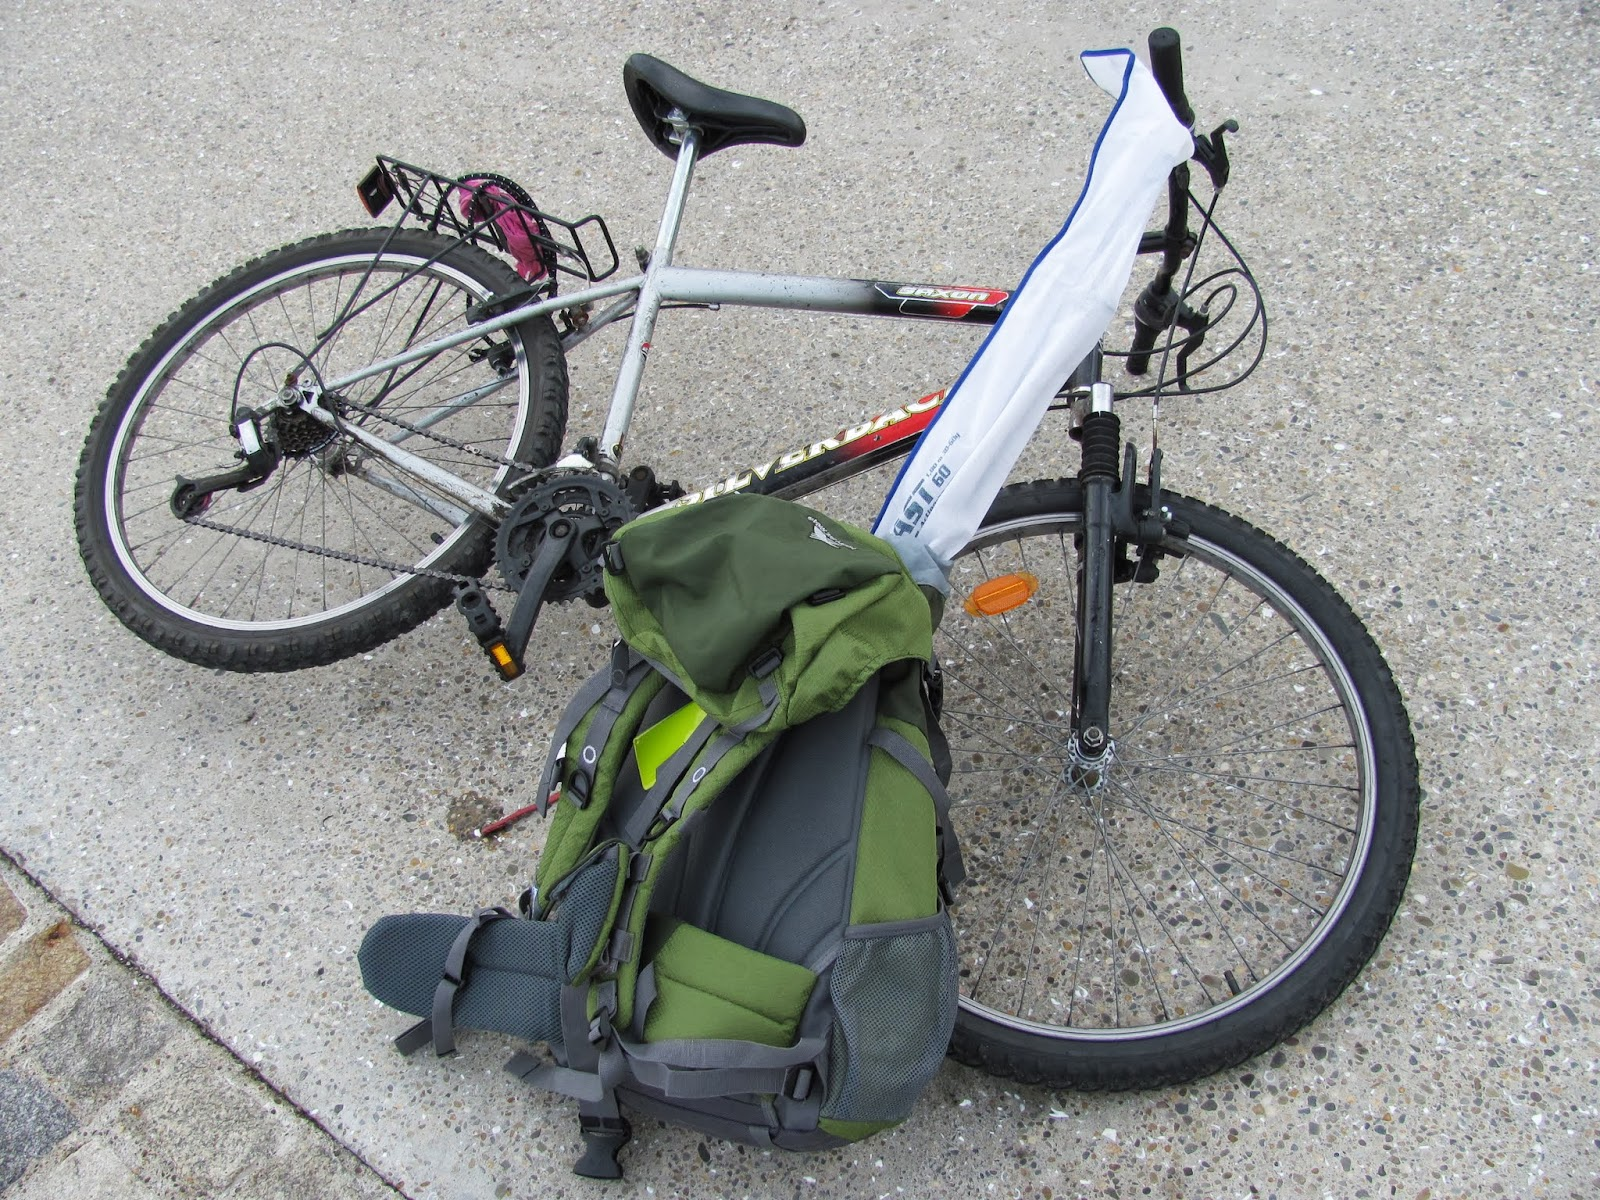 A bicycle is parked with a green backpack containing a fishing rod and fishing kit at Dun Laoghaire, Co. Dublin, Ireland